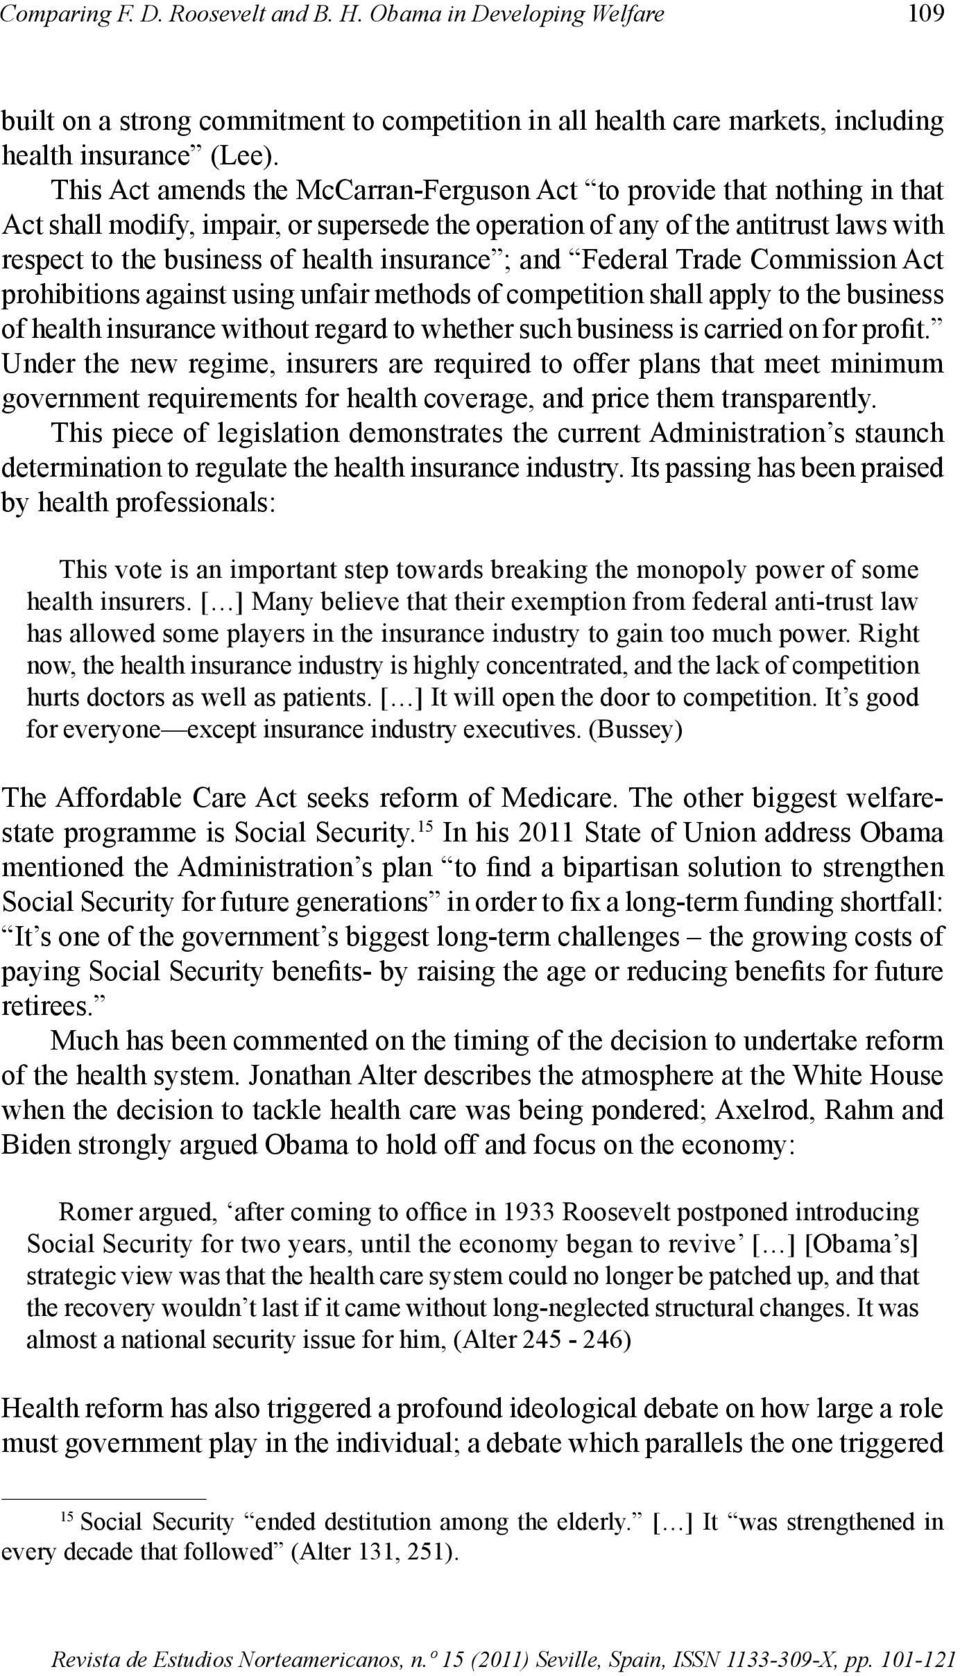 insurance ; and Federal Trade Commission Act prohibitions against using unfair methods of competition shall apply to the business of health insurance without regard to whether such business is